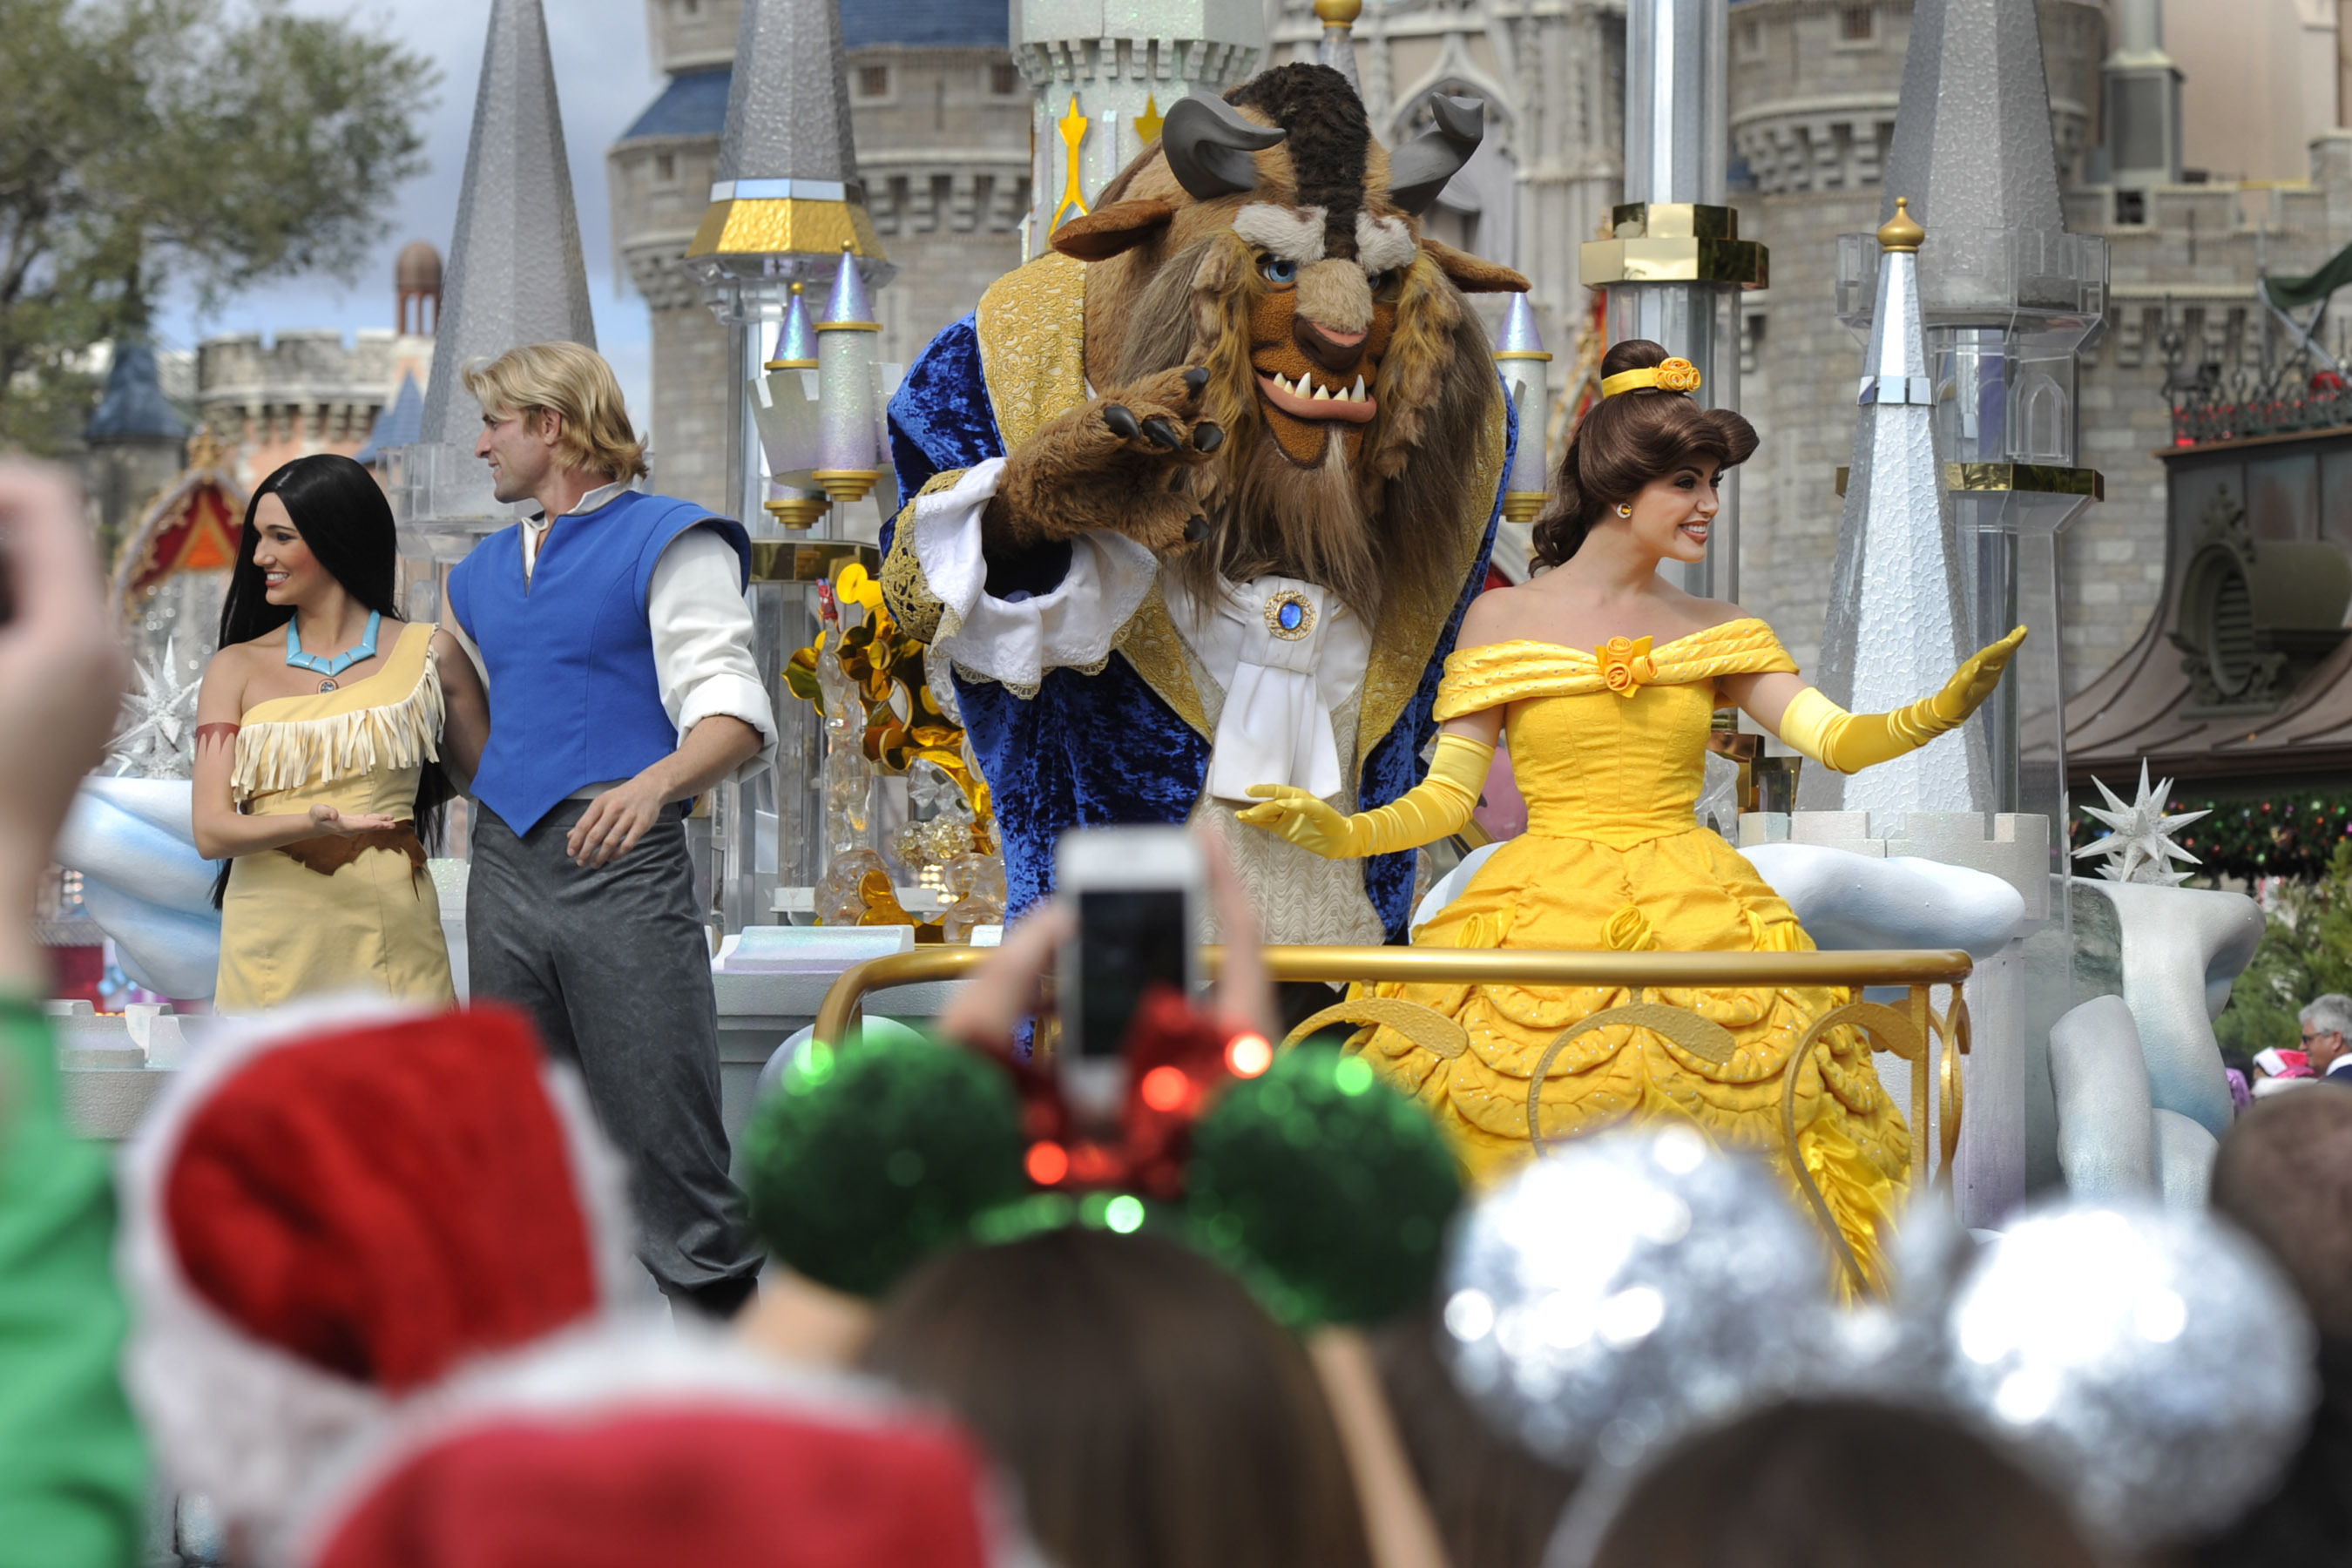 Odd Job: What's it like to be a real-life Disney princess?